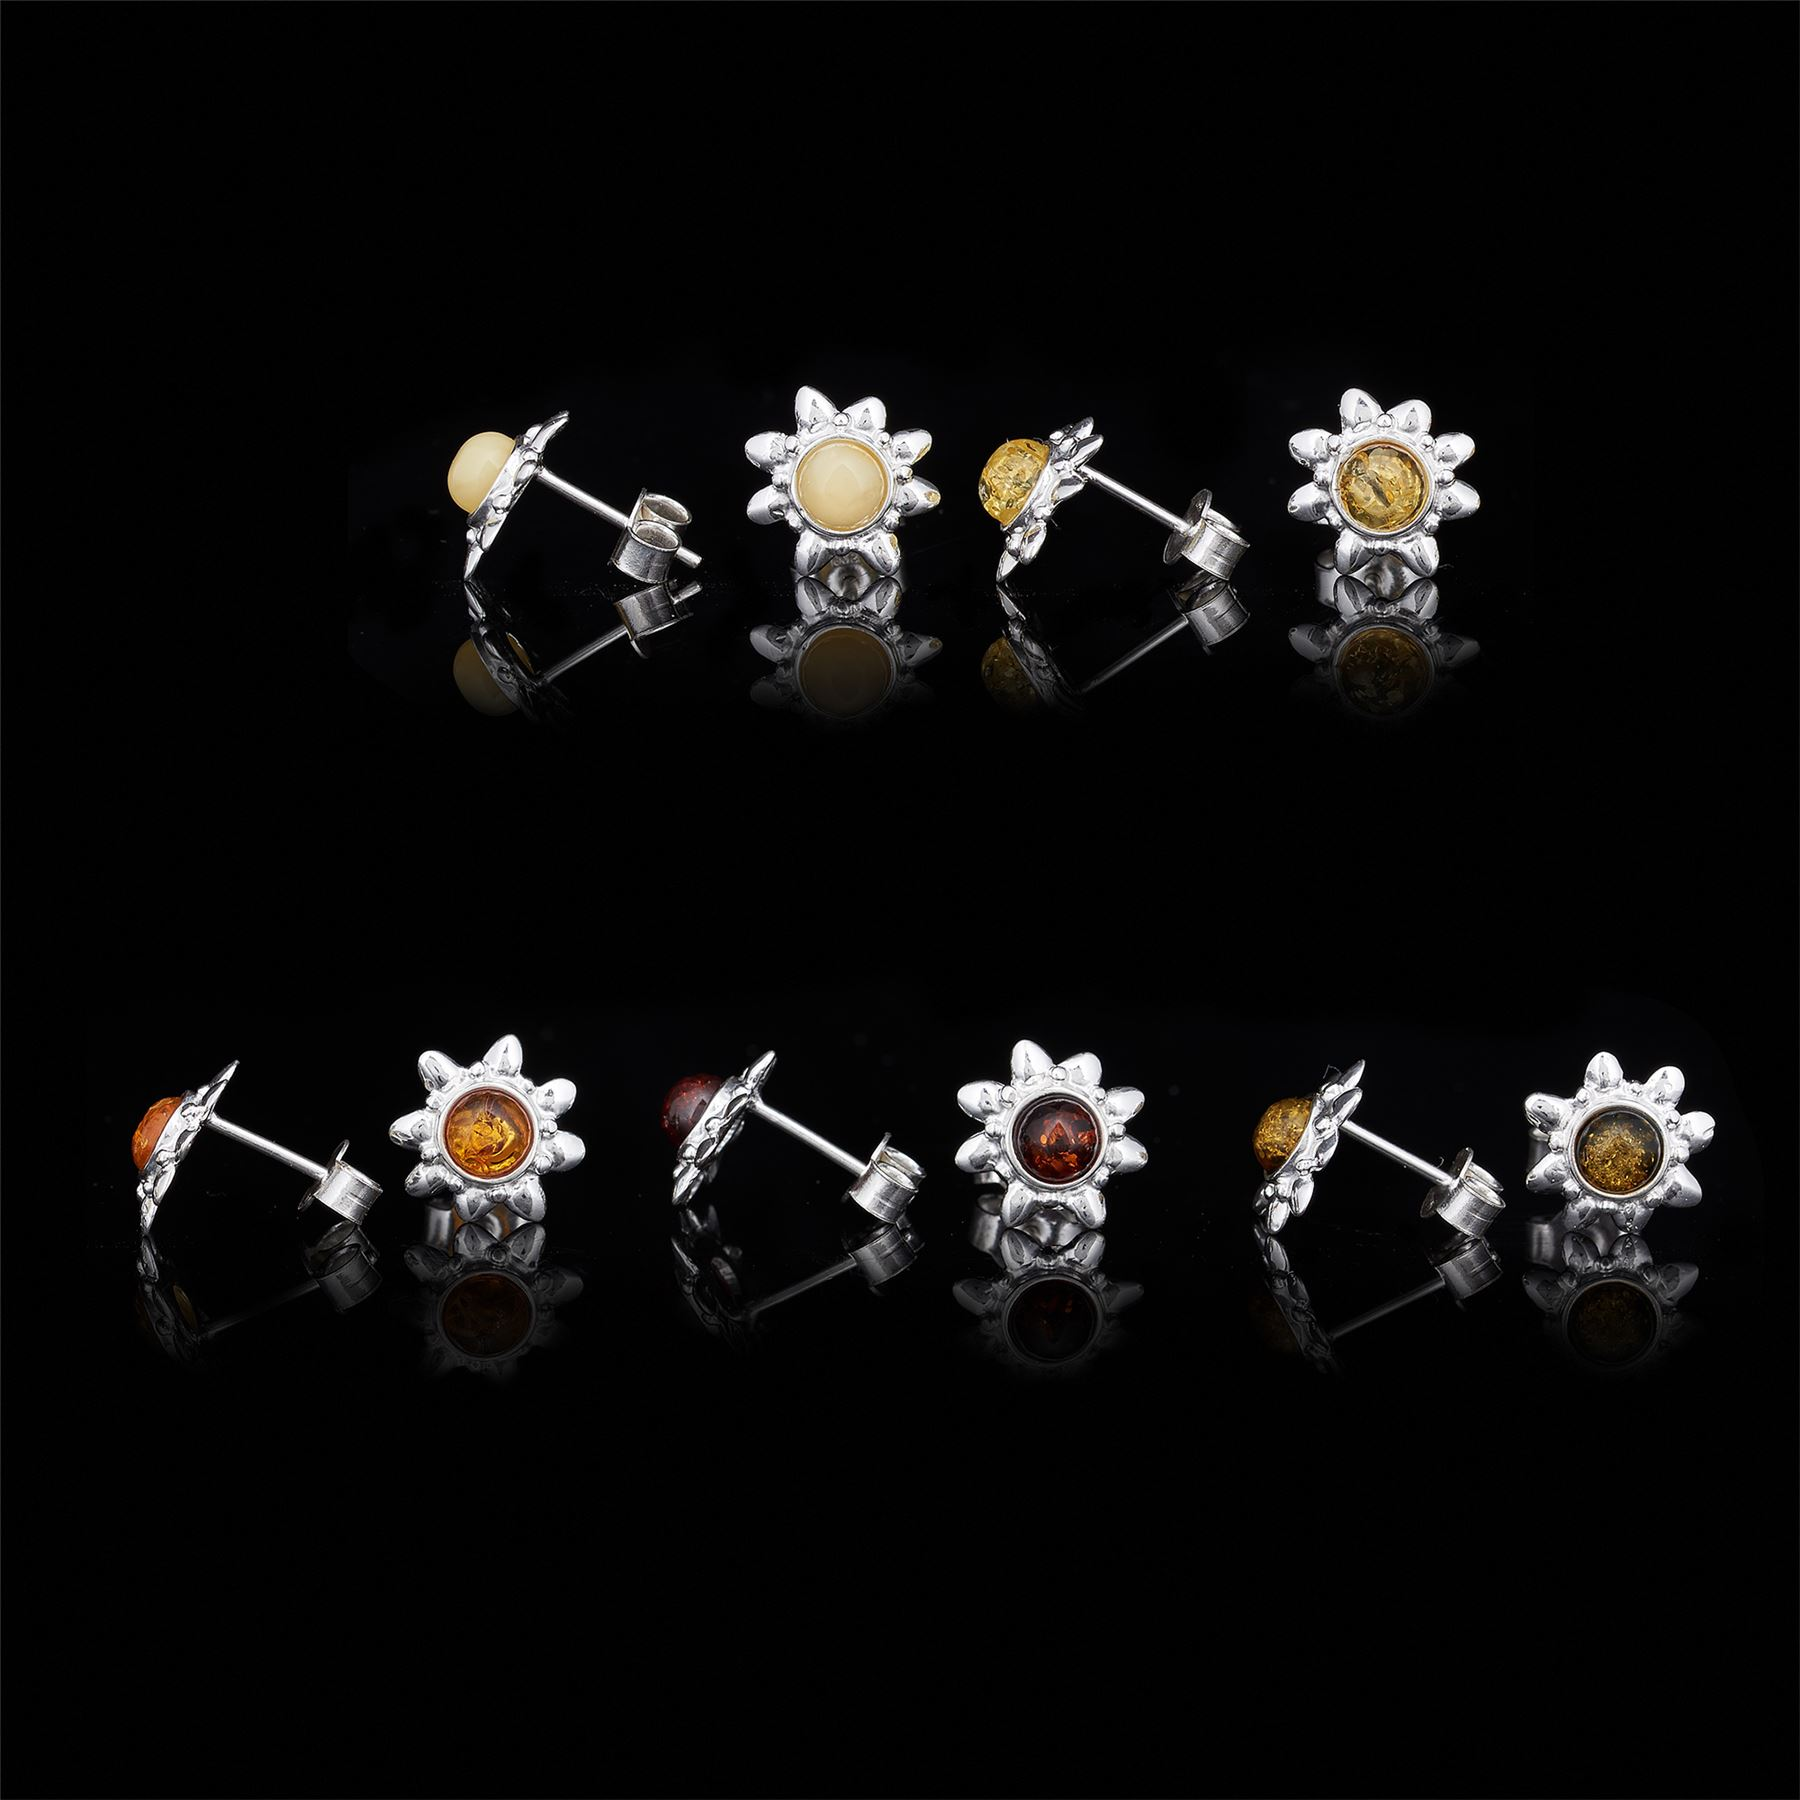 Amberta-Genuine-925-Sterling-Silver-Earrings-with-Natural-Baltic-Amber-Gemstone thumbnail 128